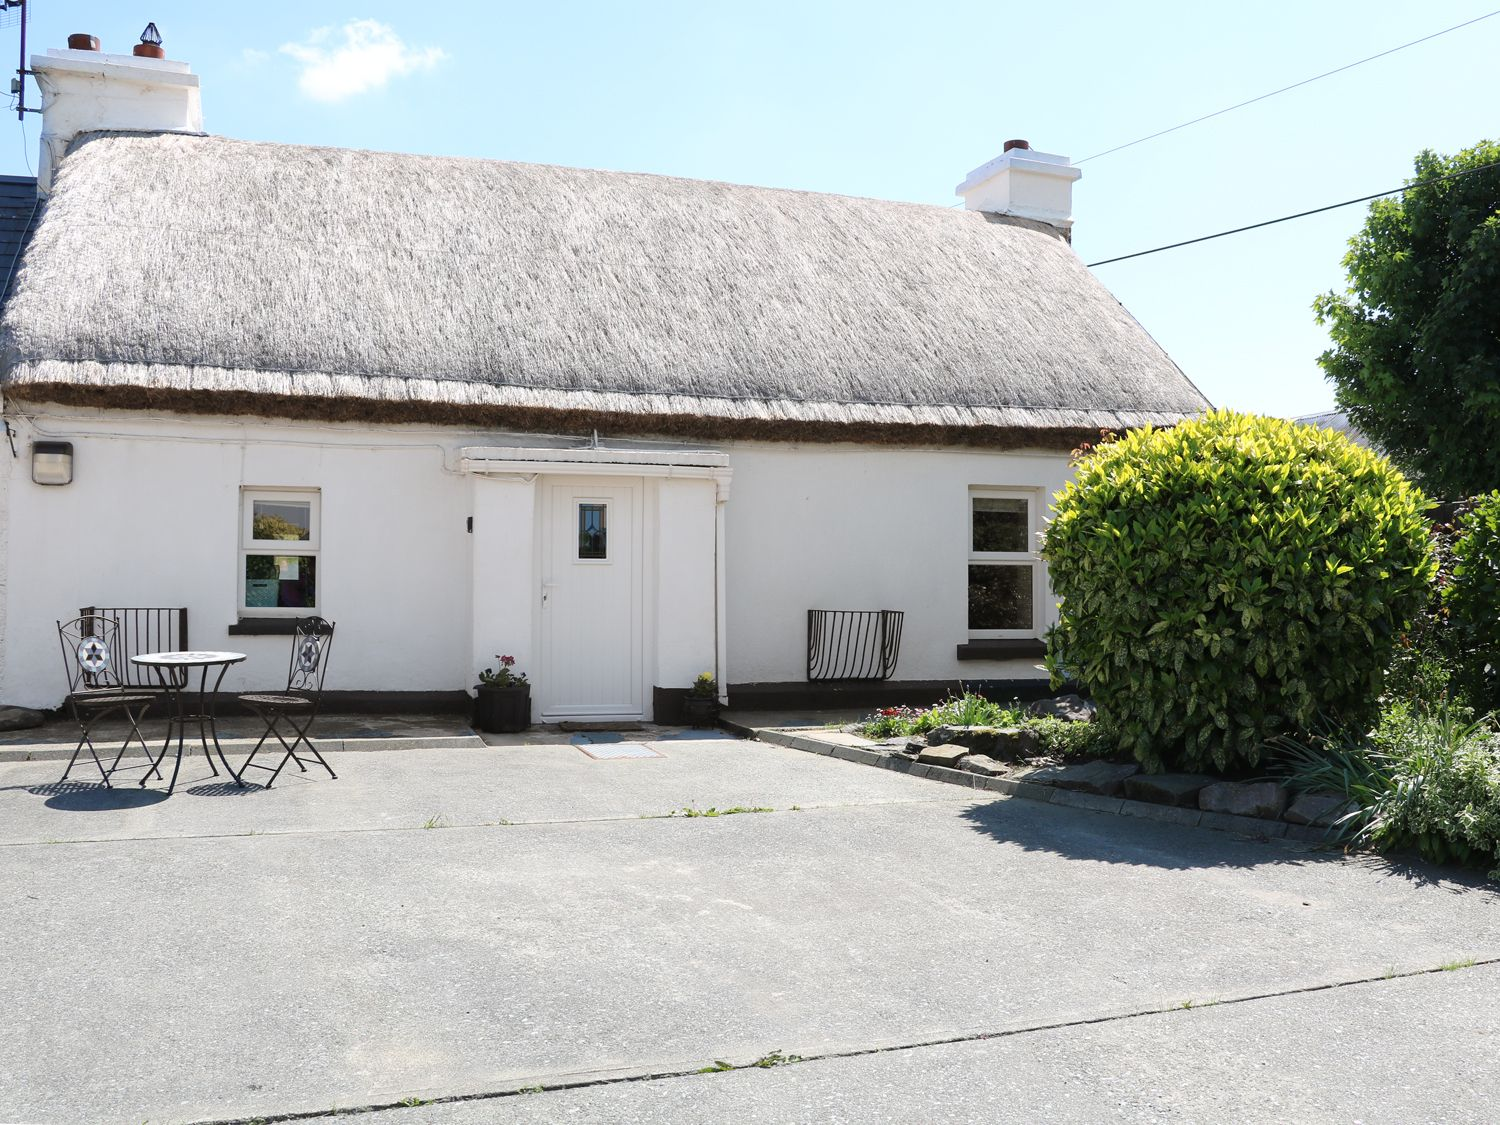 Whispering Willows - The Thatch, Ireland